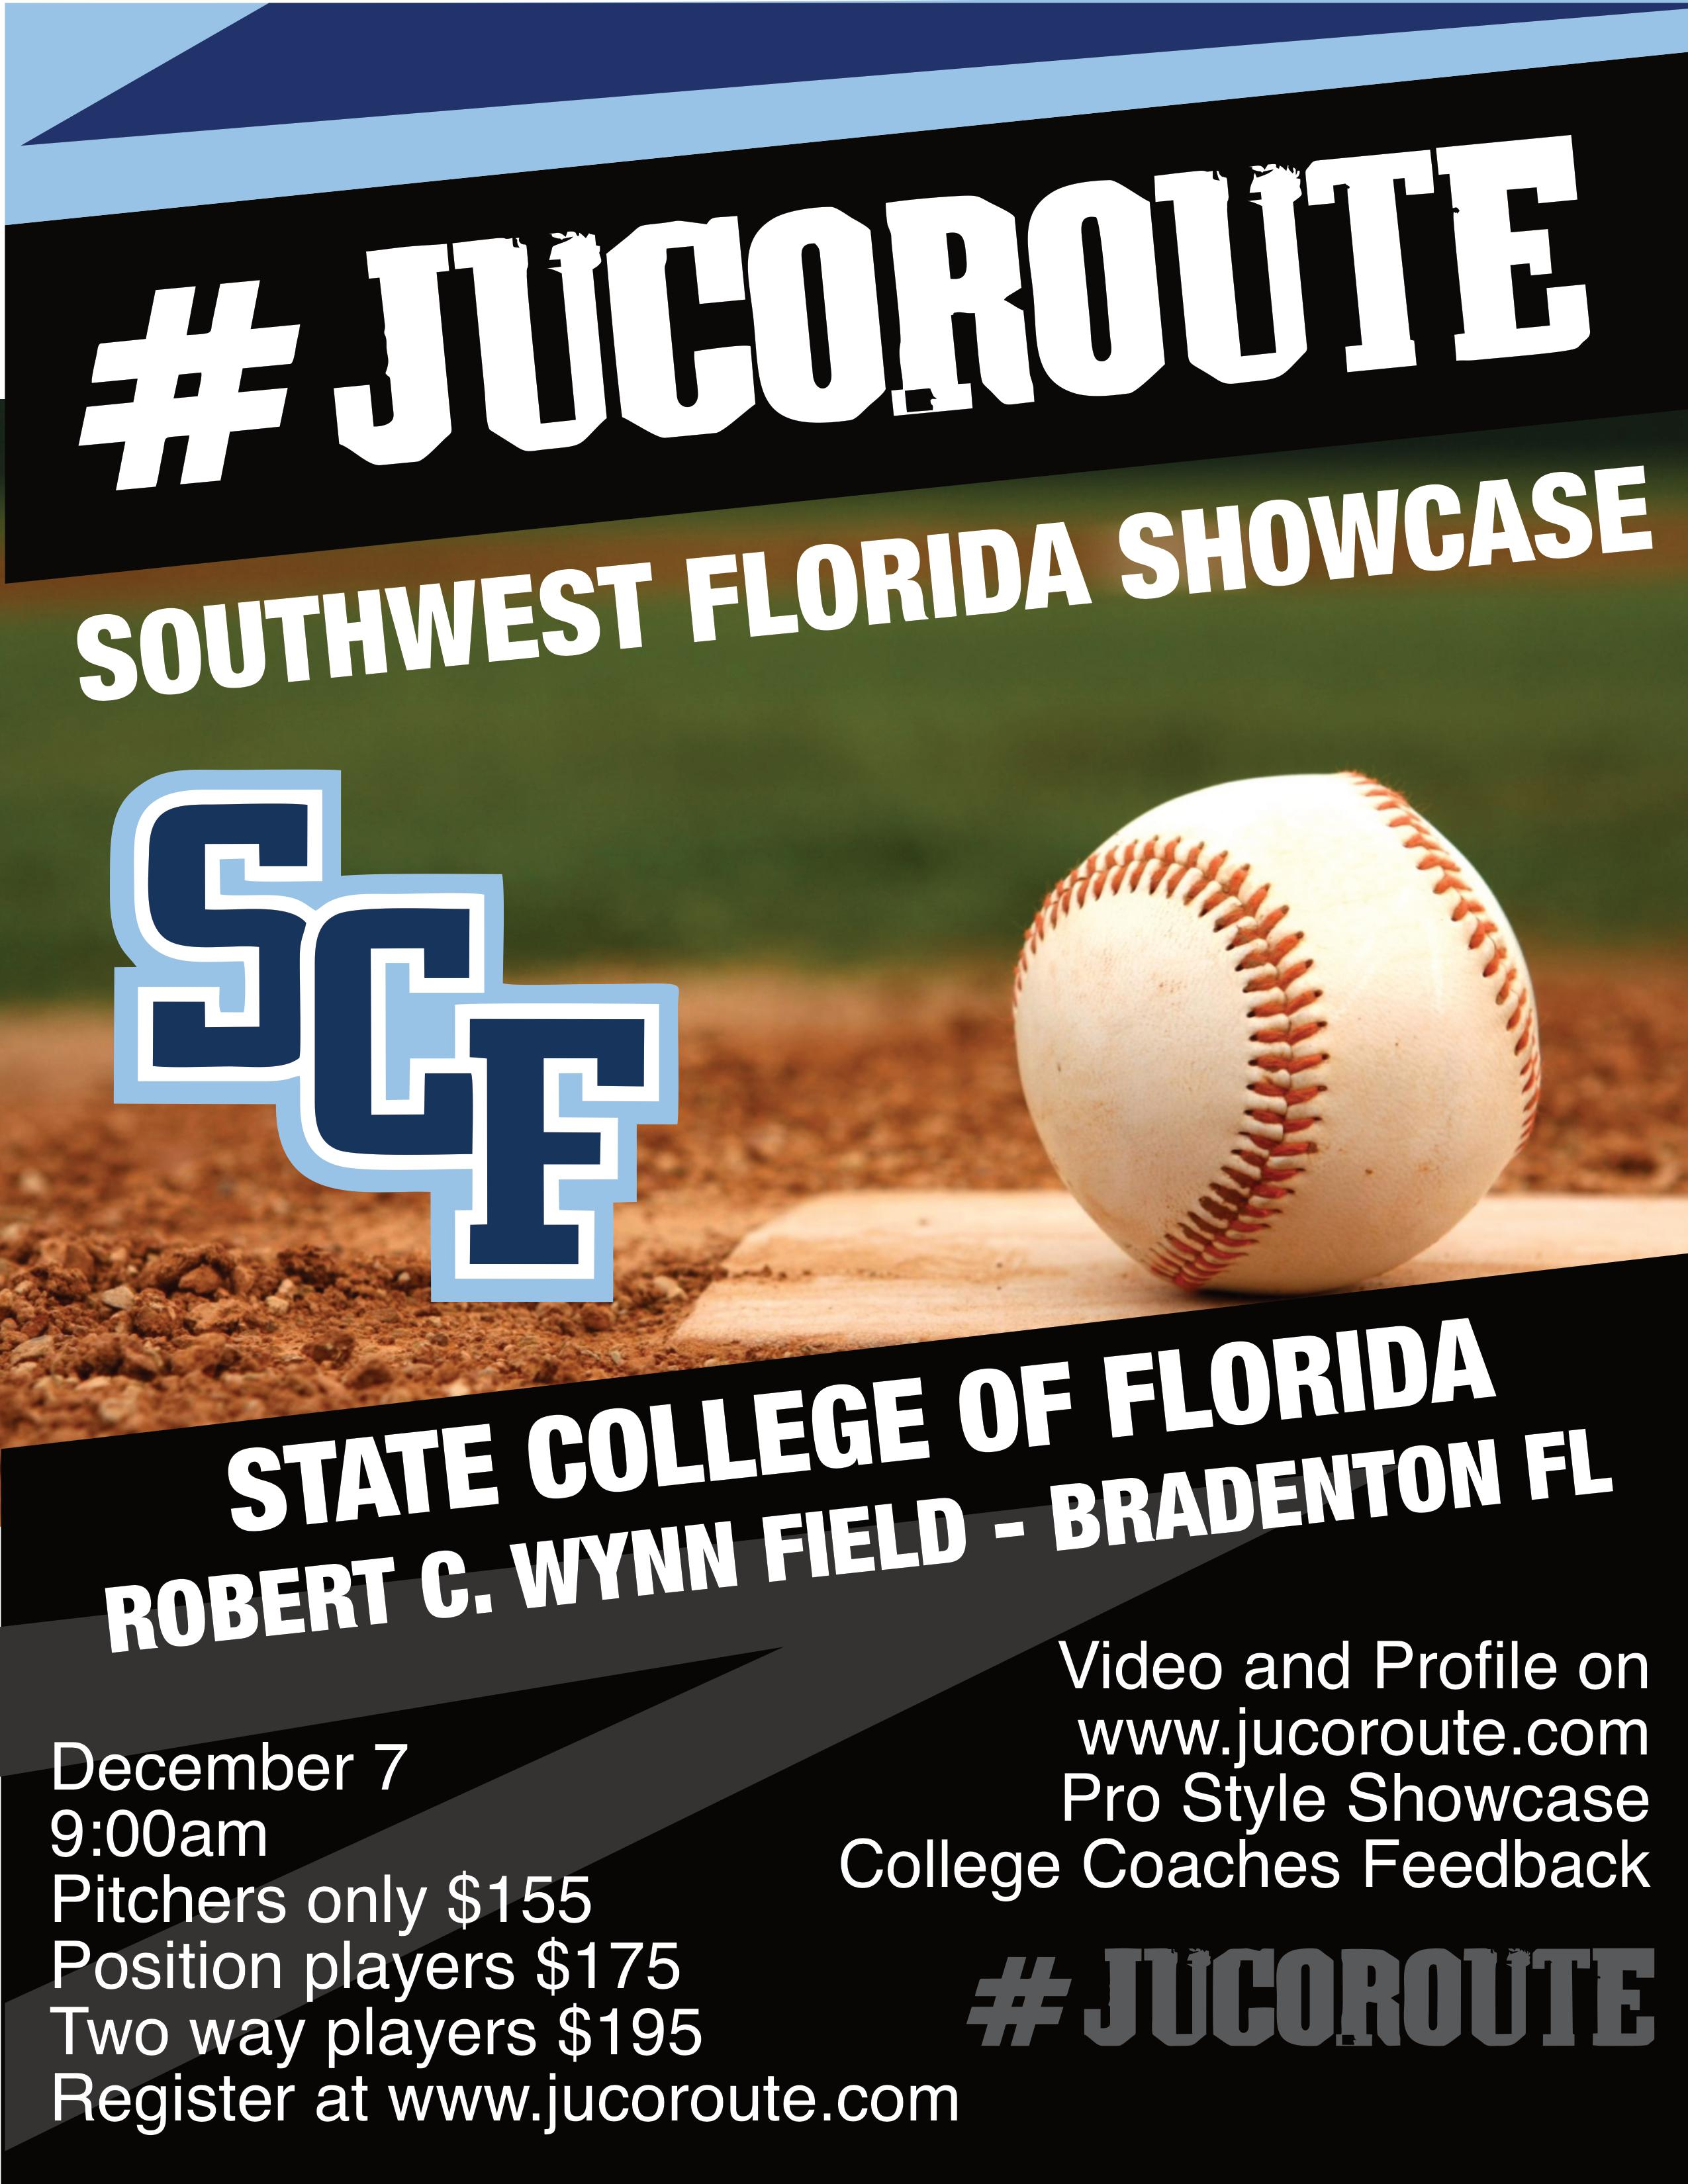 Juco Route | Promoting the #JUCOROUTE through social media